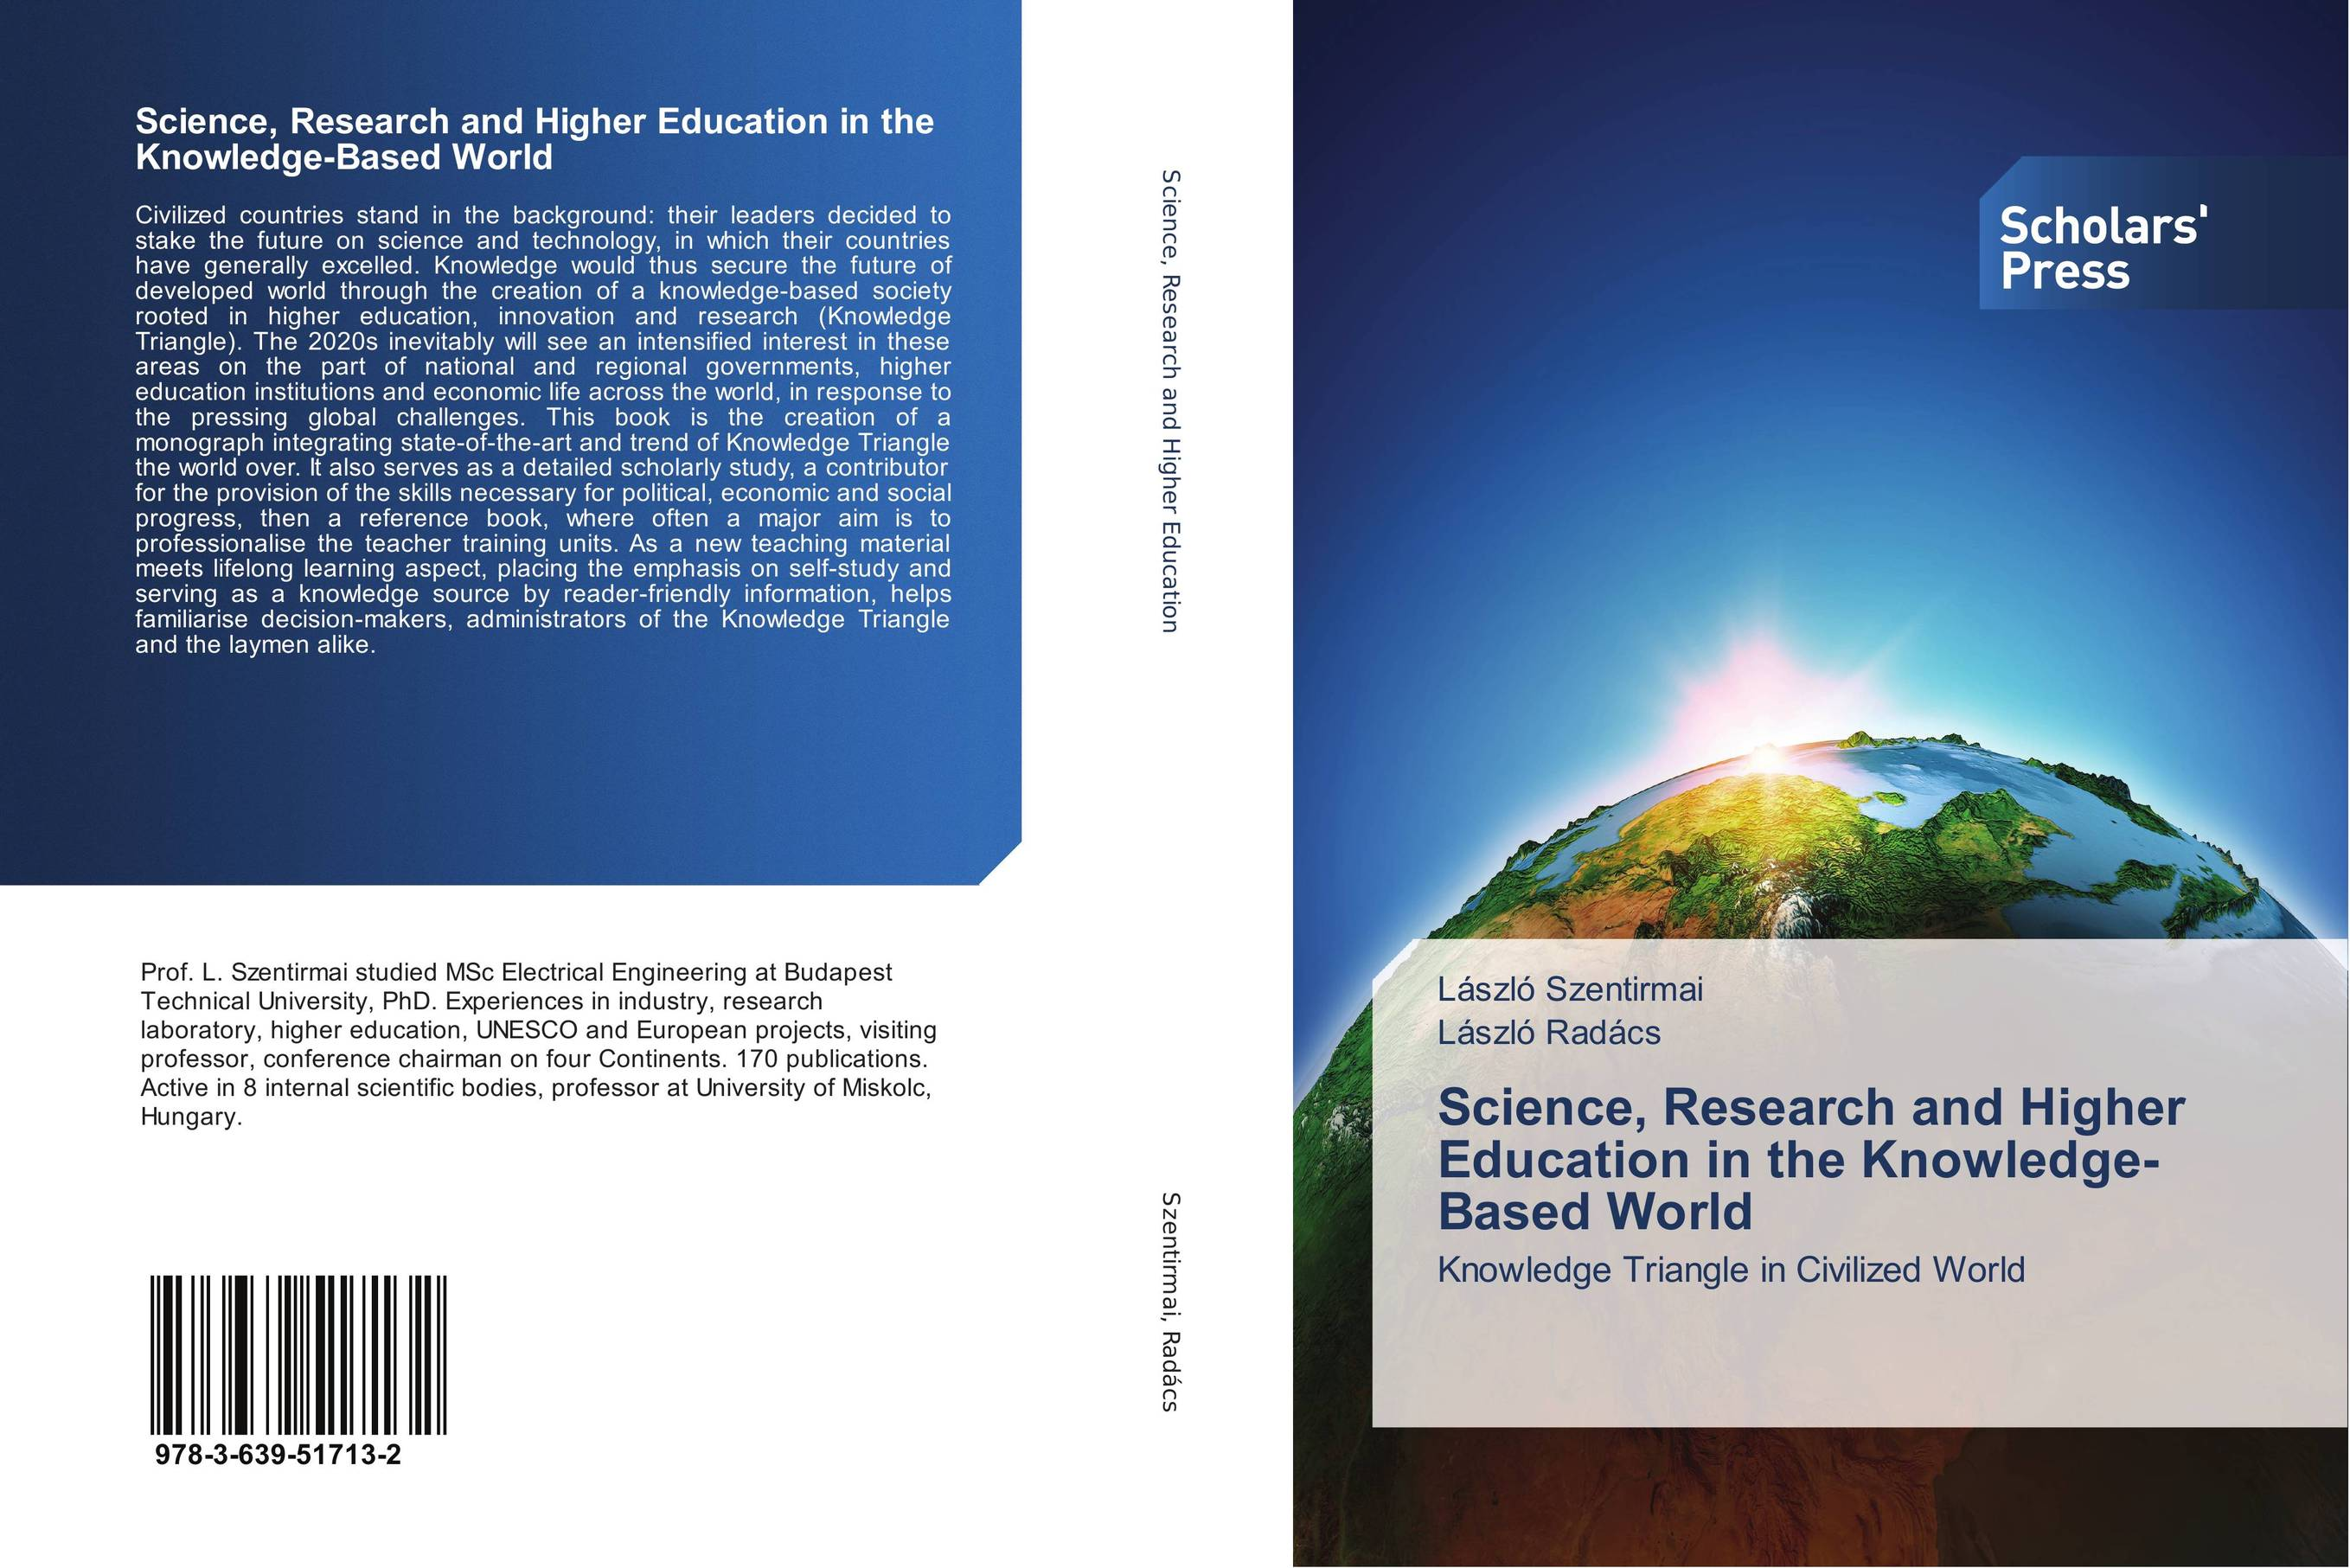 Science, Research and Higher Education in the Knowledge-Based World manage enterprise knowledge systematically